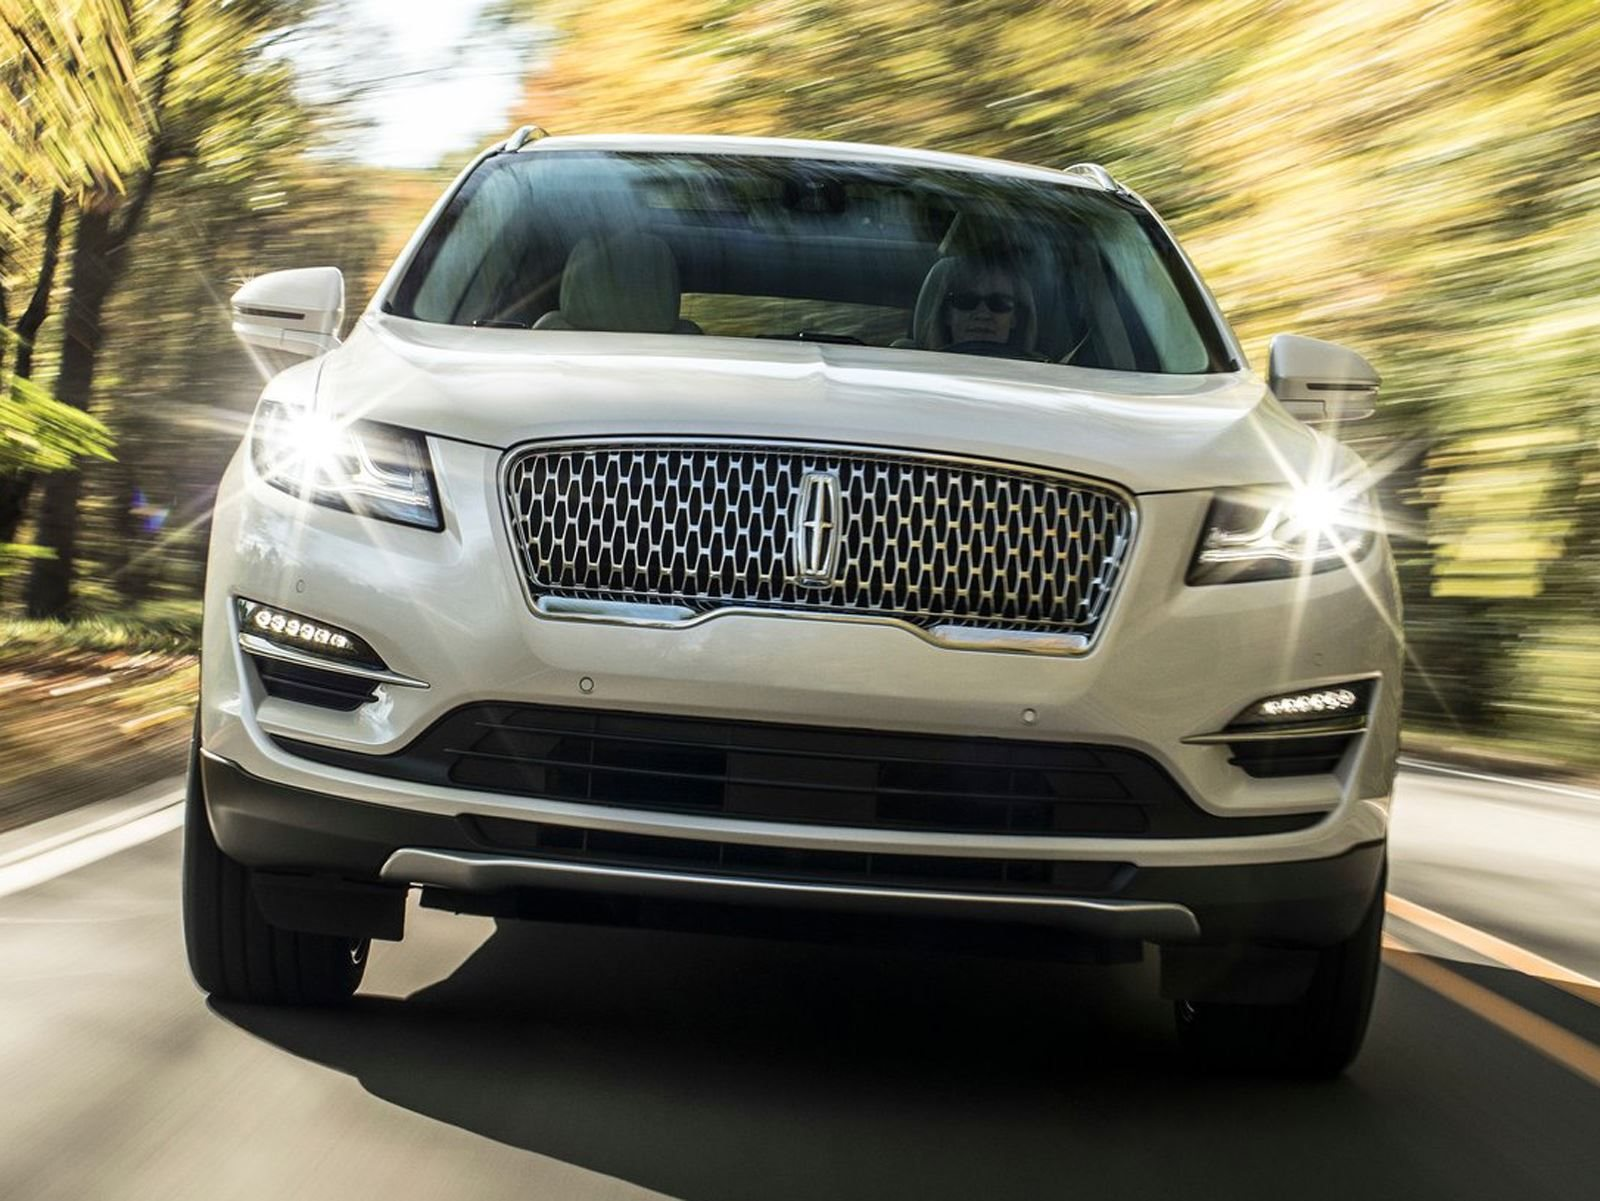 2021 Lincoln MKX Price and Review